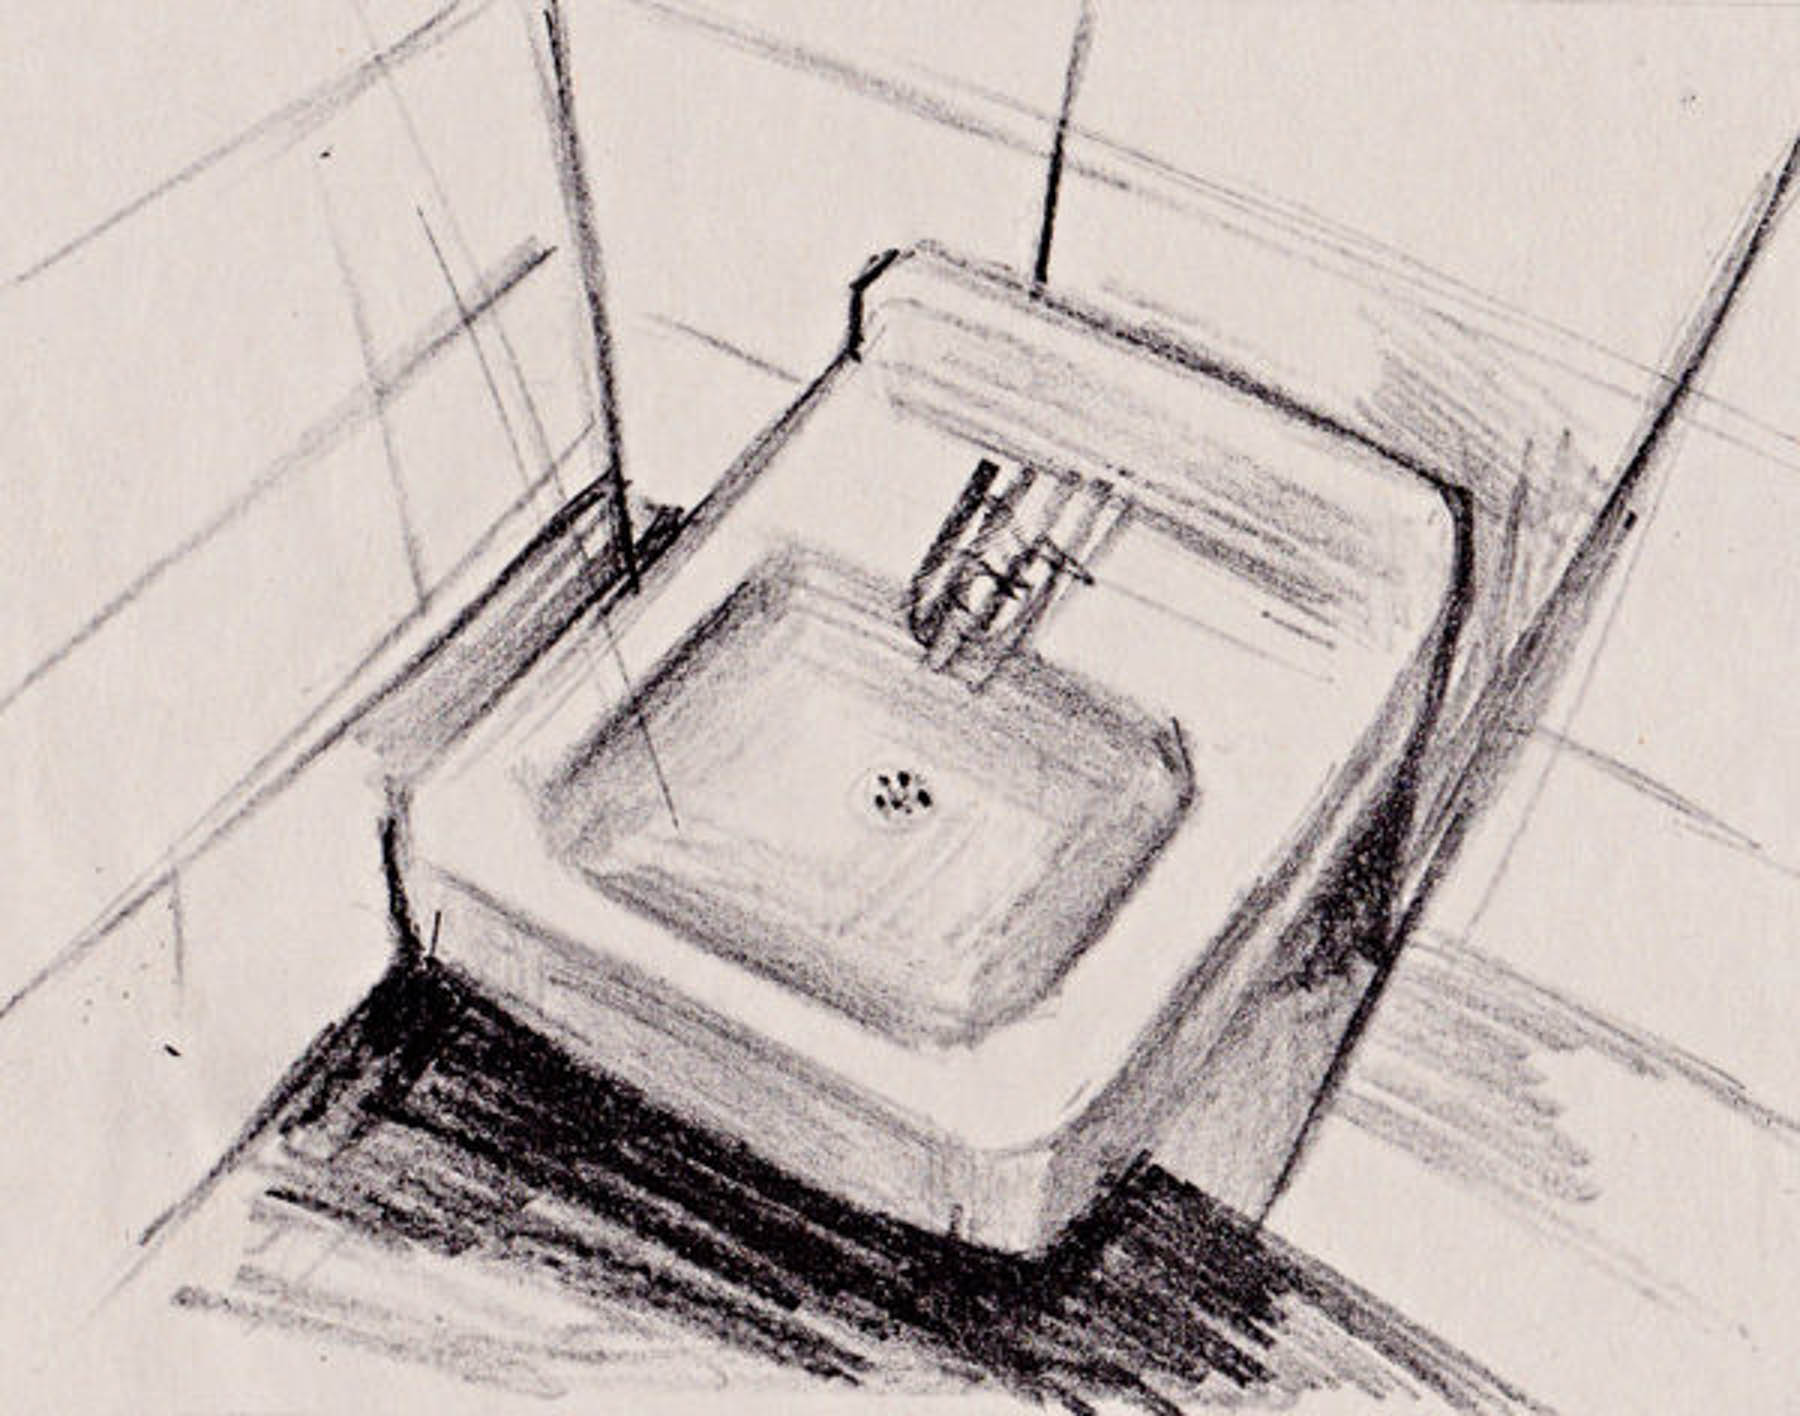 Sink, Lithograph, Ink on Paper, 8 x 6 inches